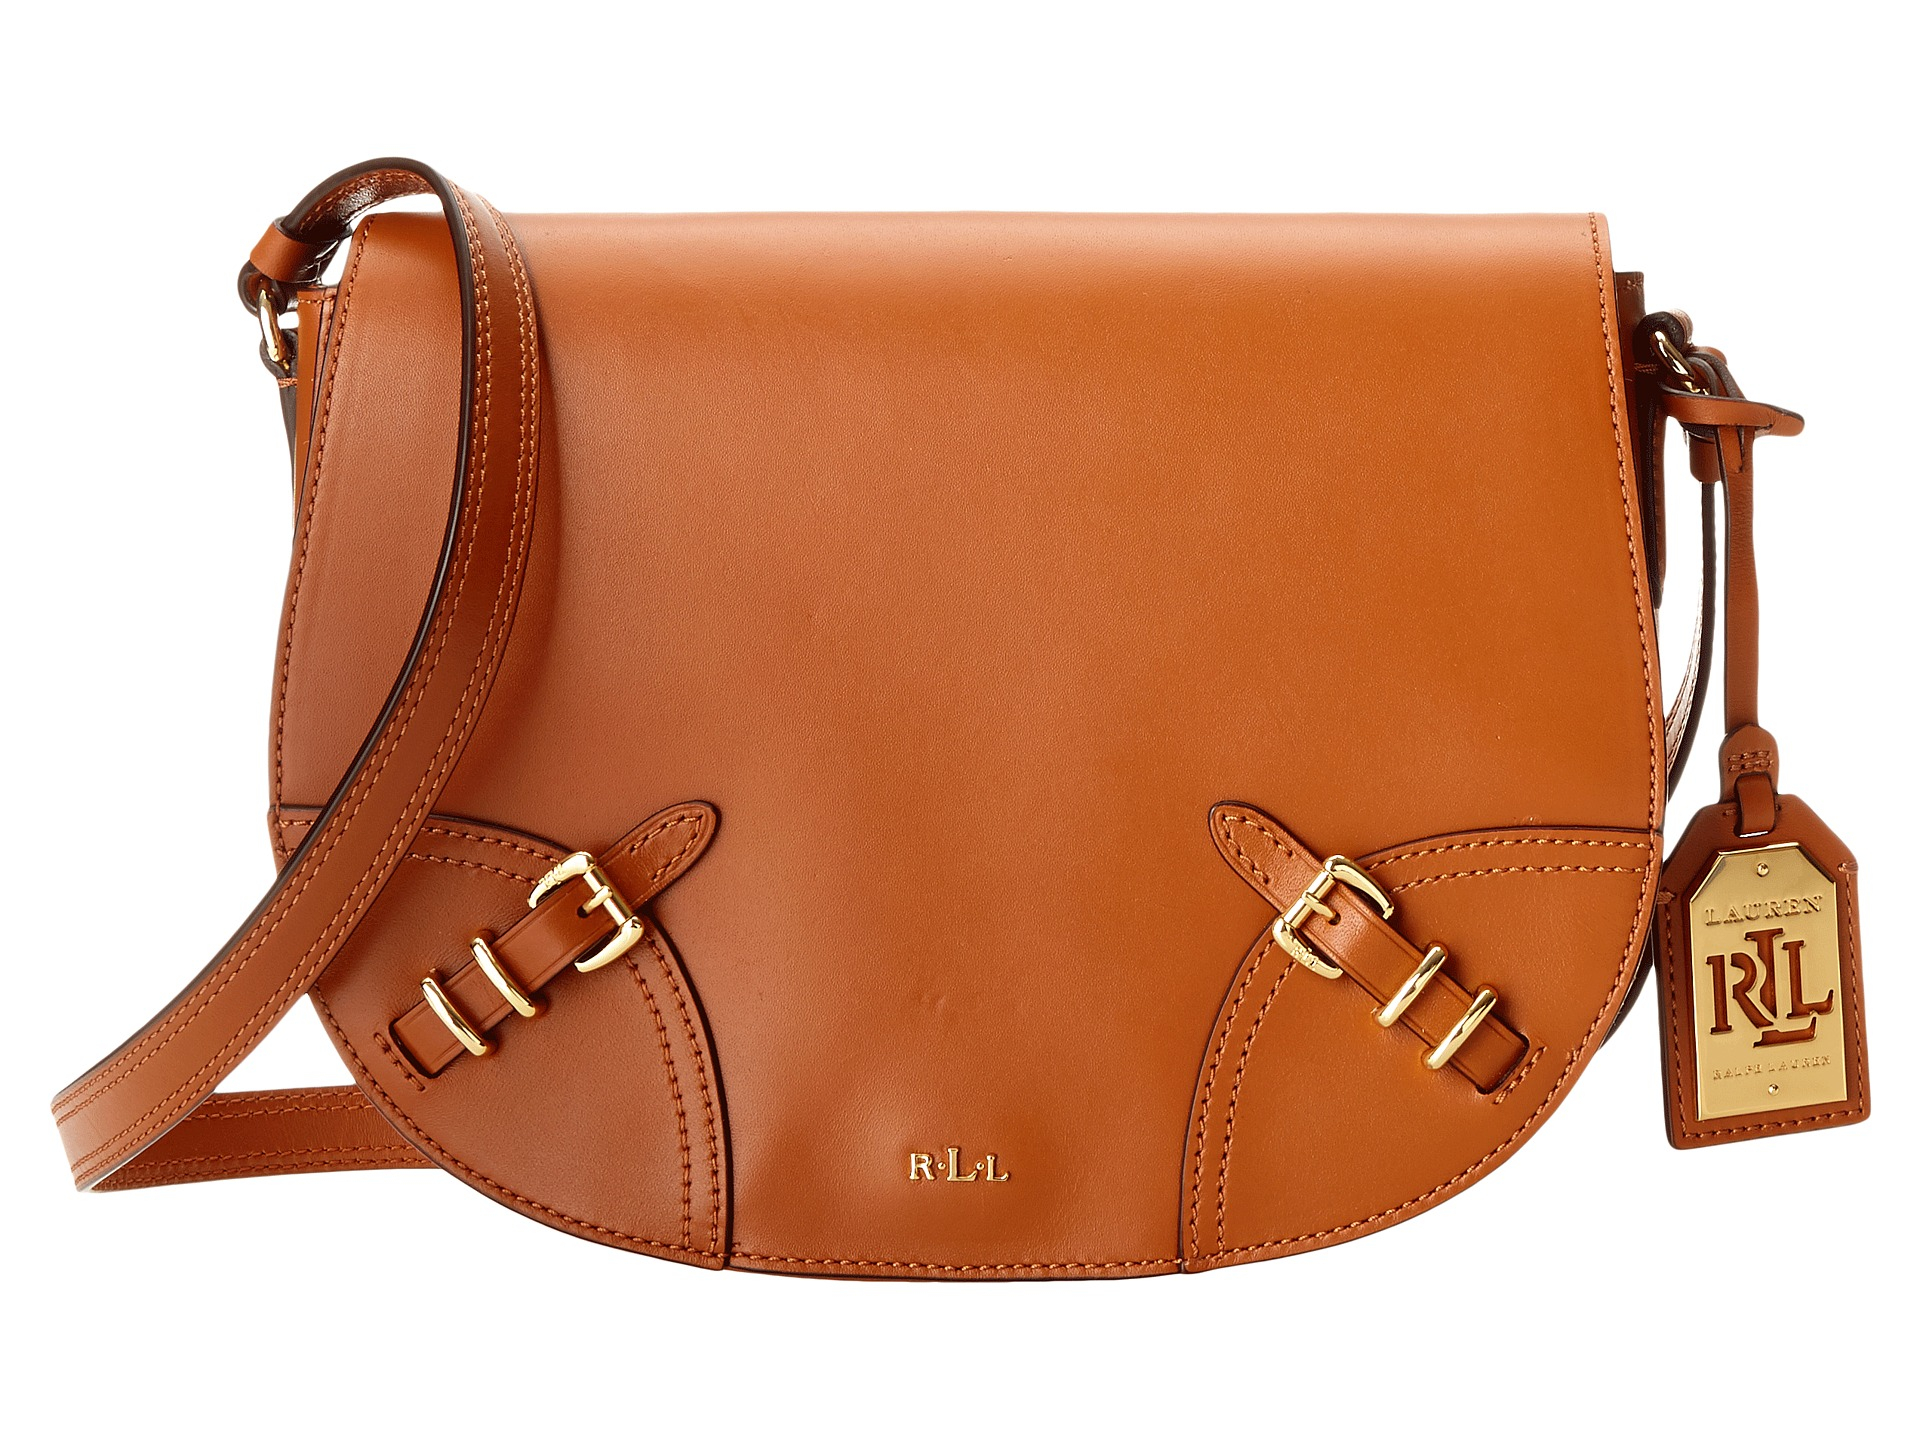 38c304290a83 Gallery. Previously sold at  Zappos · Women s Saddle Bags ...